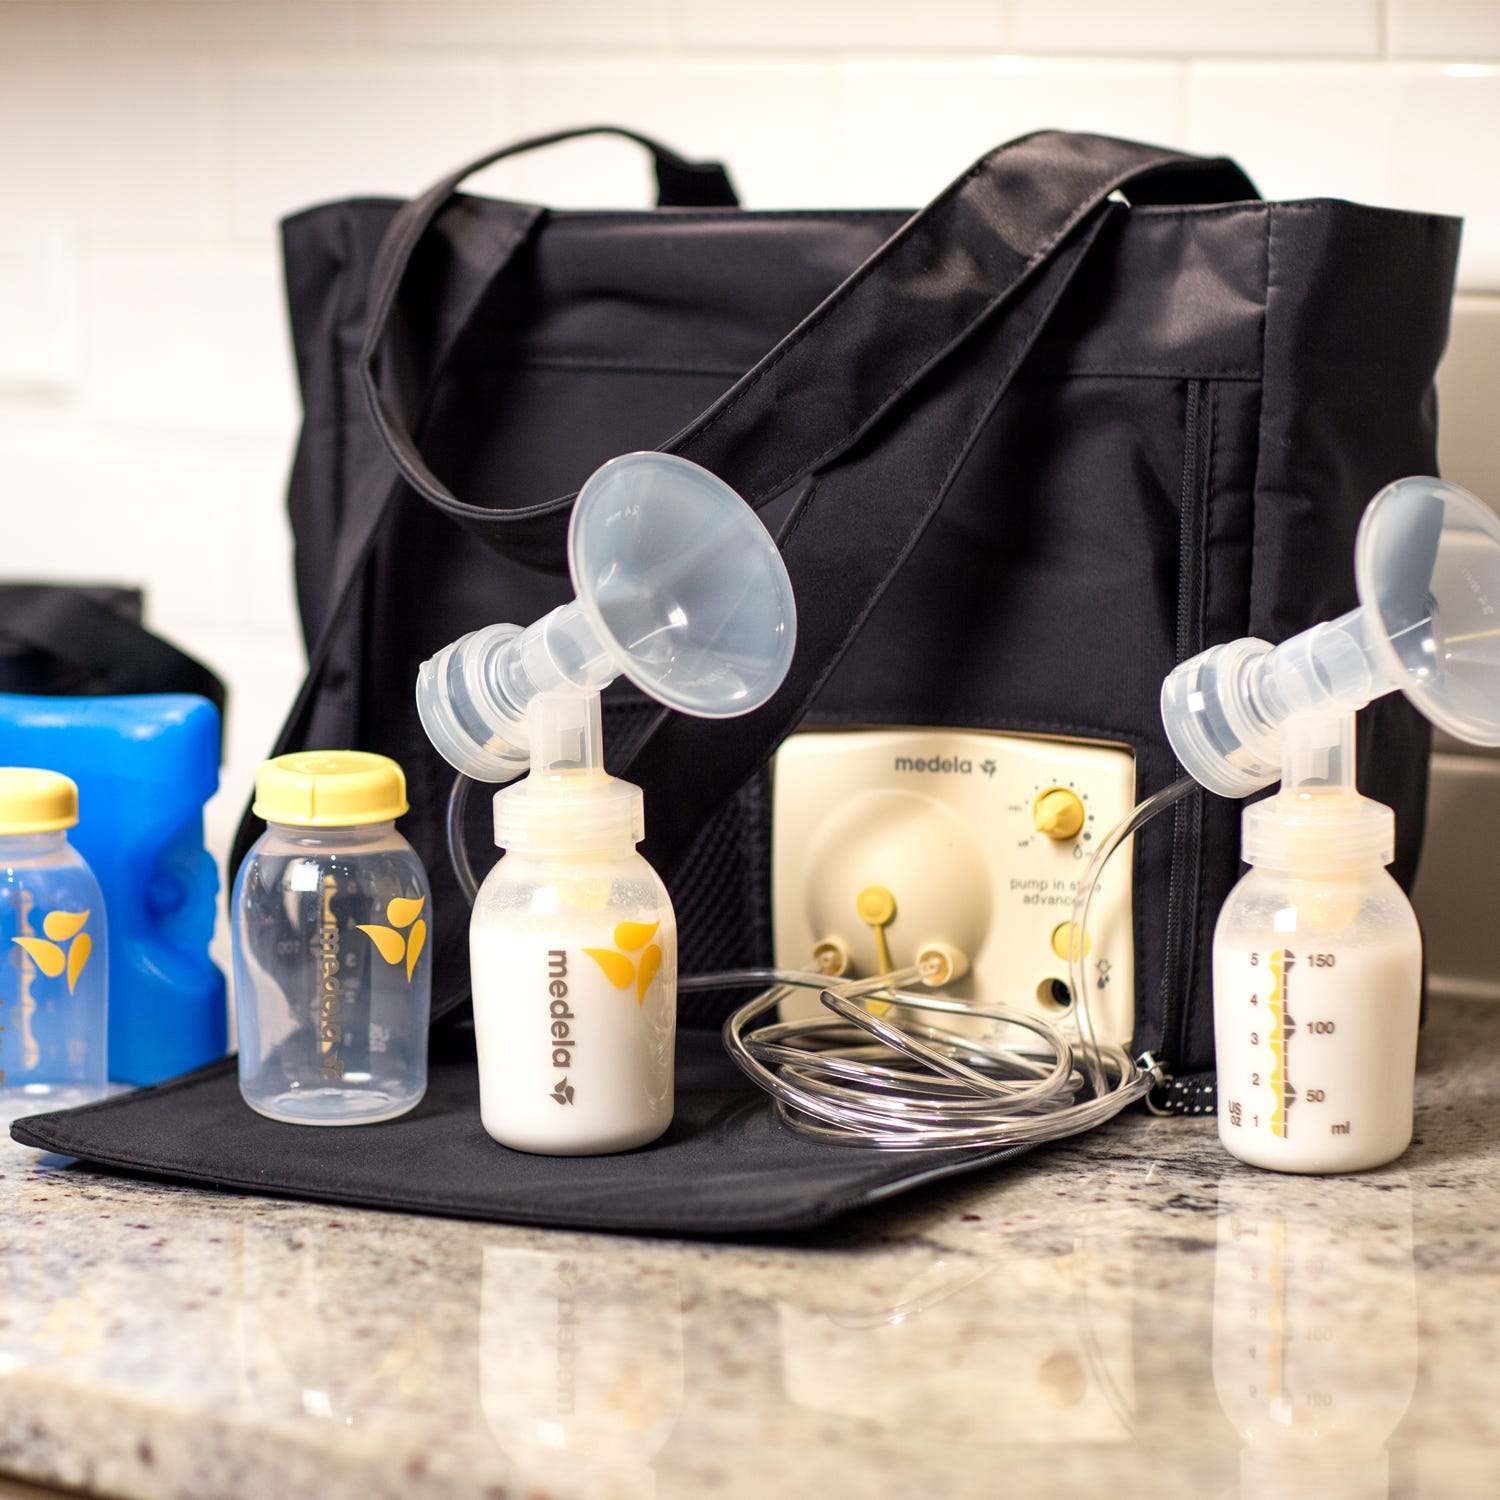 Blog Upgrade Your Insurance Breastpump Aeroflow Breastpumps